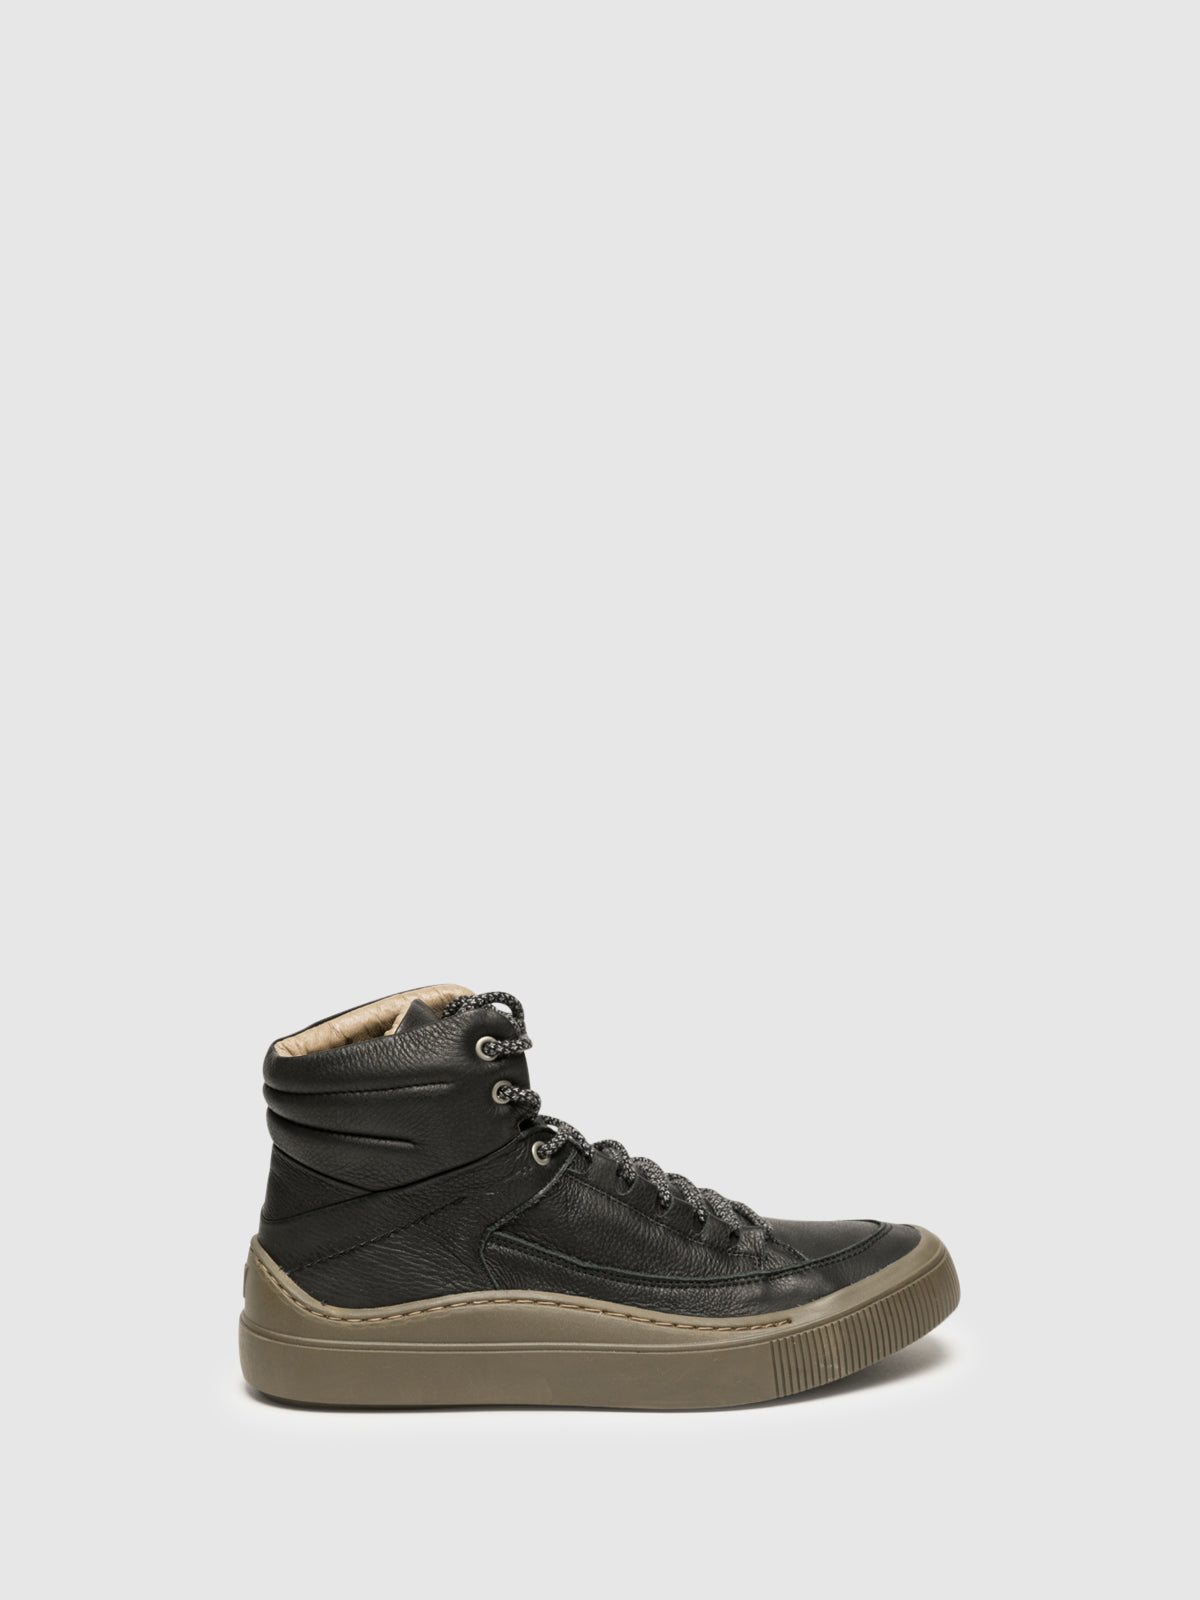 Fly London Black Hi-Top Trainers